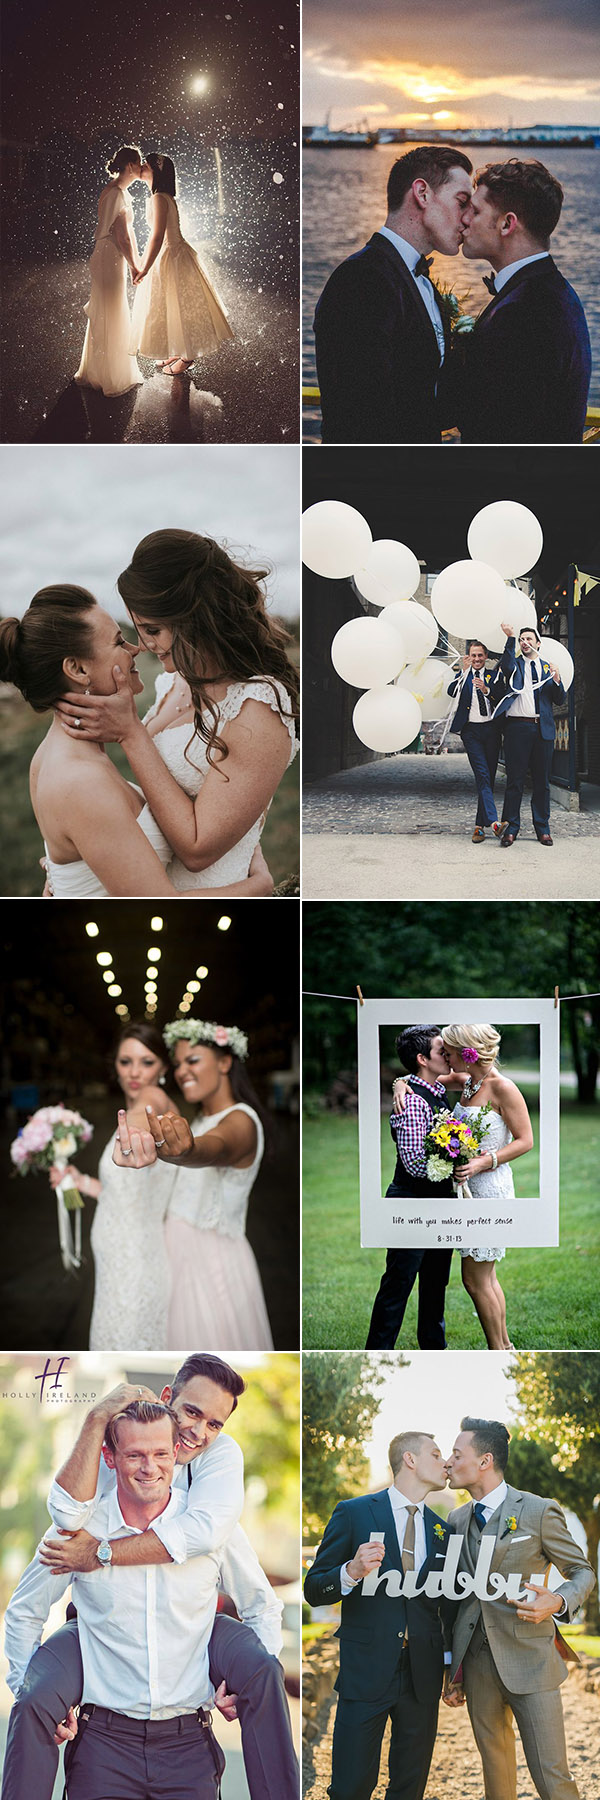 Sweet and Romantic Wedding Photo Ideas for Lesbian and Same Sex Wedding